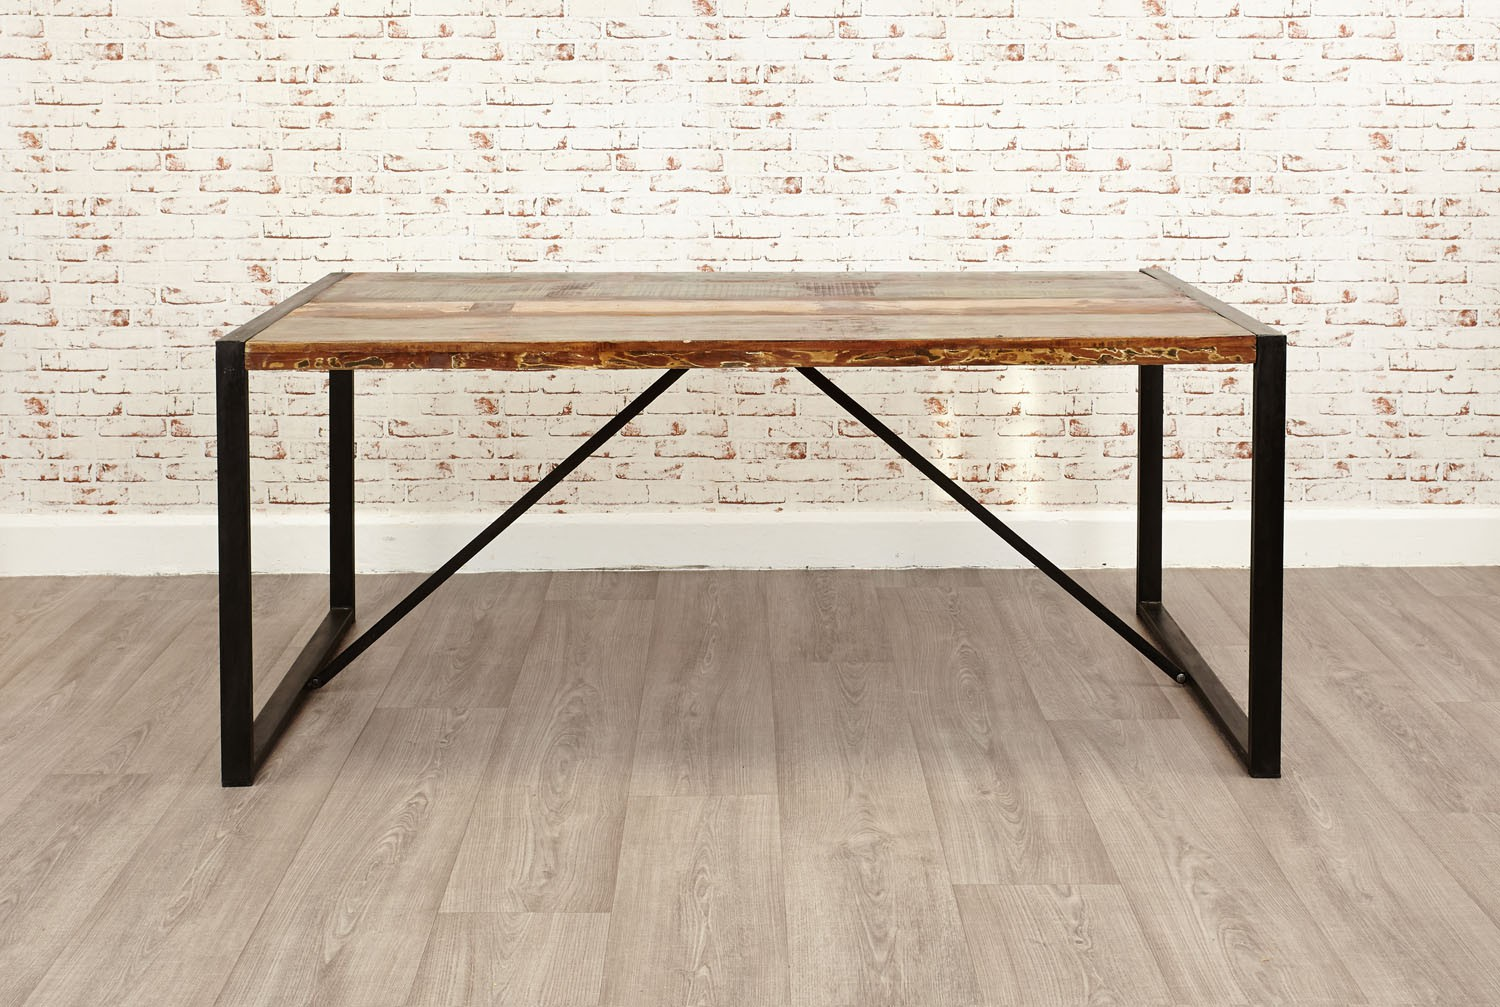 Urban Chic Dining Table Large Dining Tables Dining  : reclaimedwooddiningtablelargeurbanchicirf04b5 from www.hallowood.co.uk size 1500 x 1007 jpeg 355kB